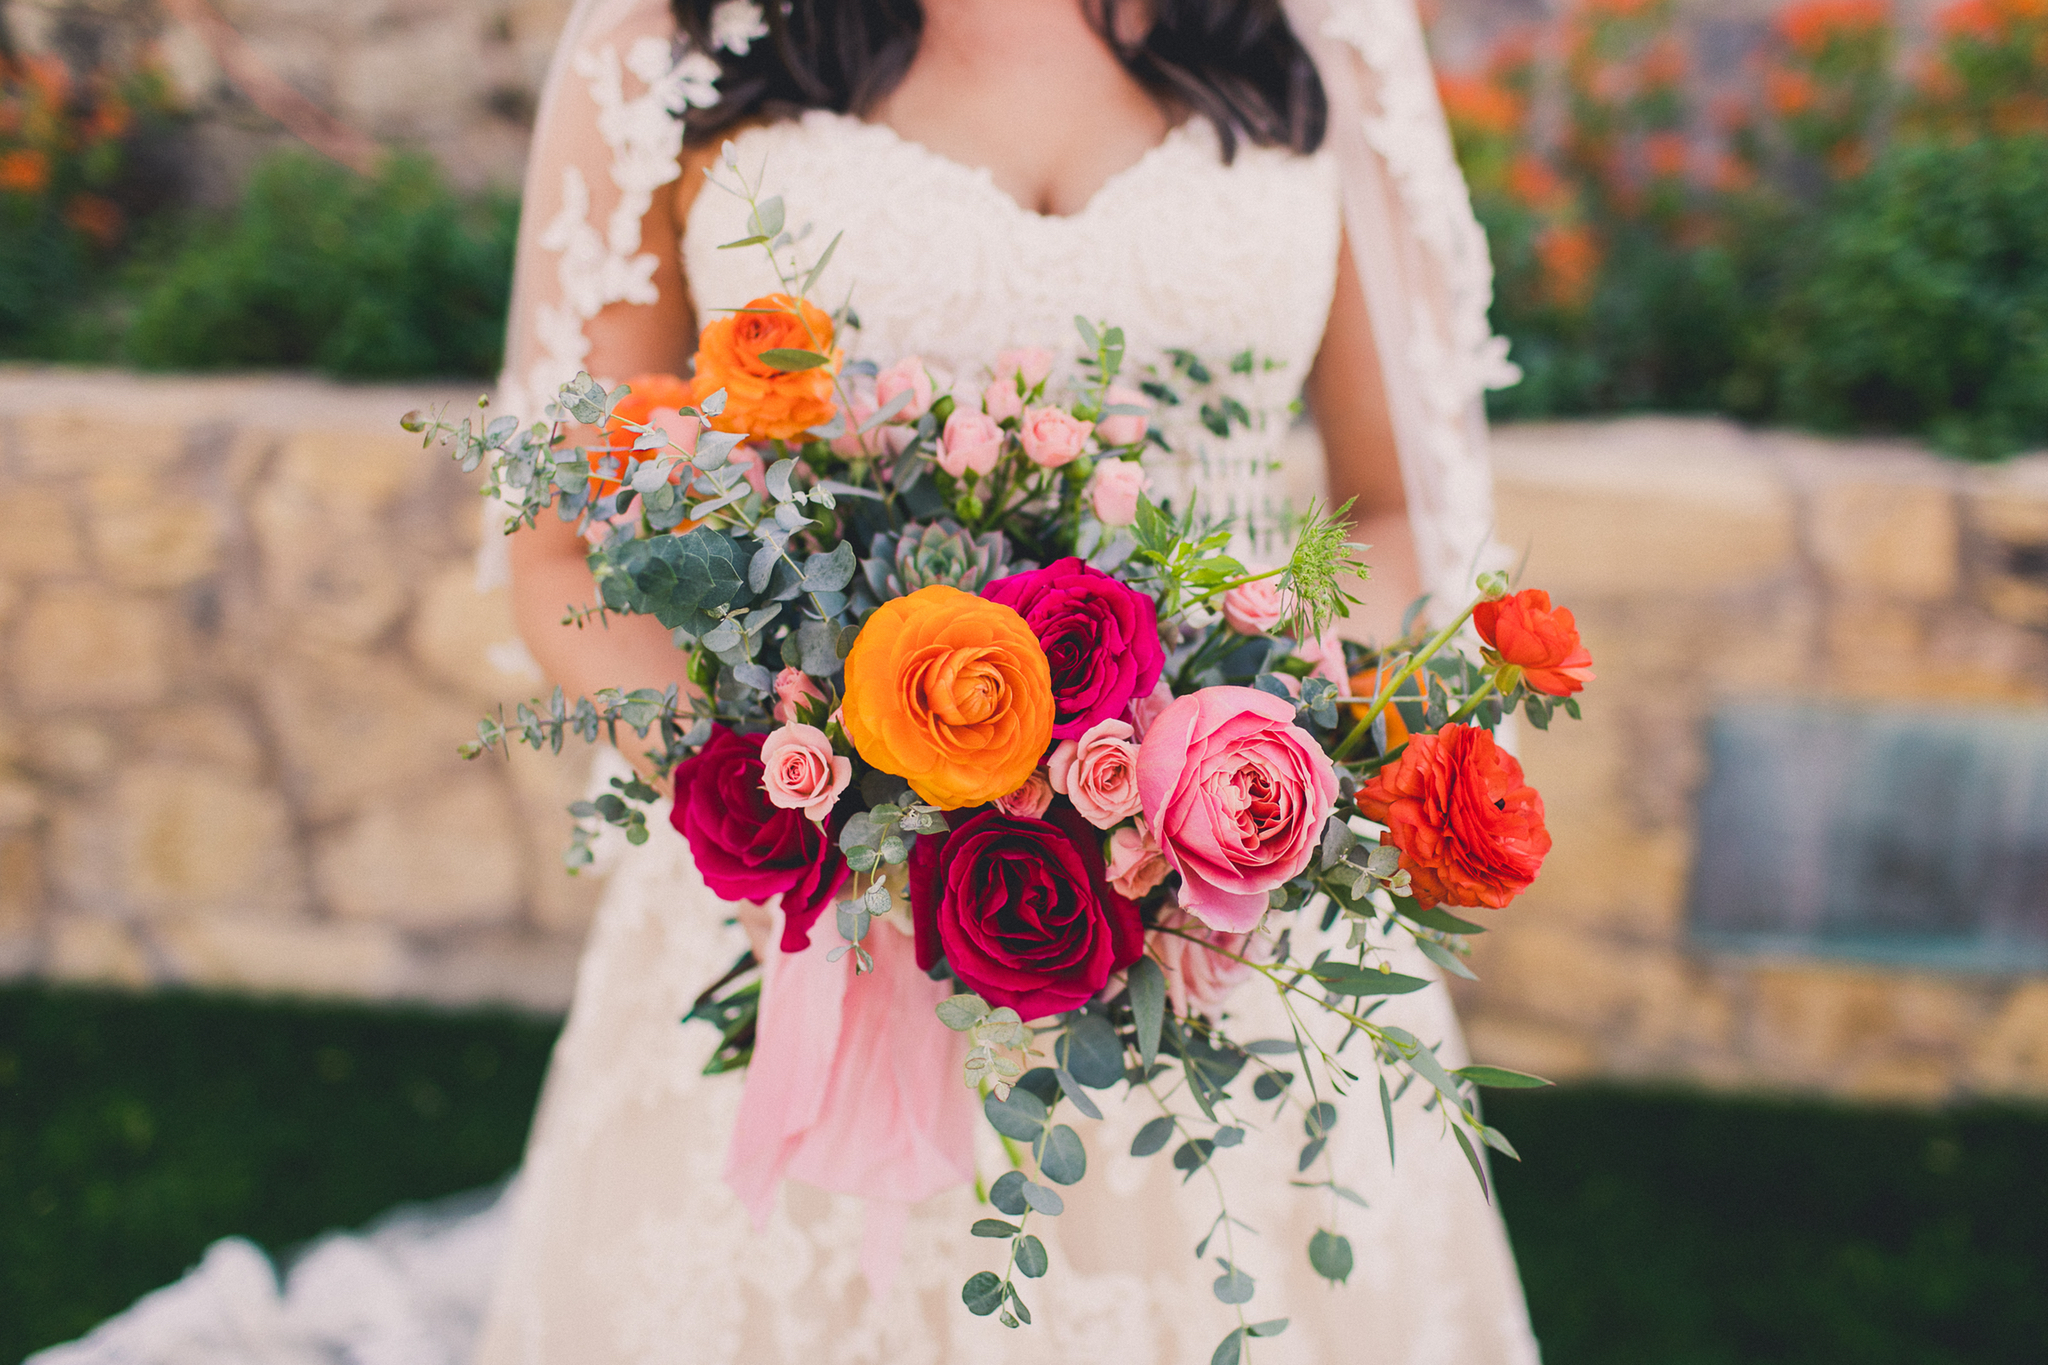 Colorful Springtime Wedding at Wrigley Mansion - Bridal Bouquet with garden roses, succulents, and eucalyptus